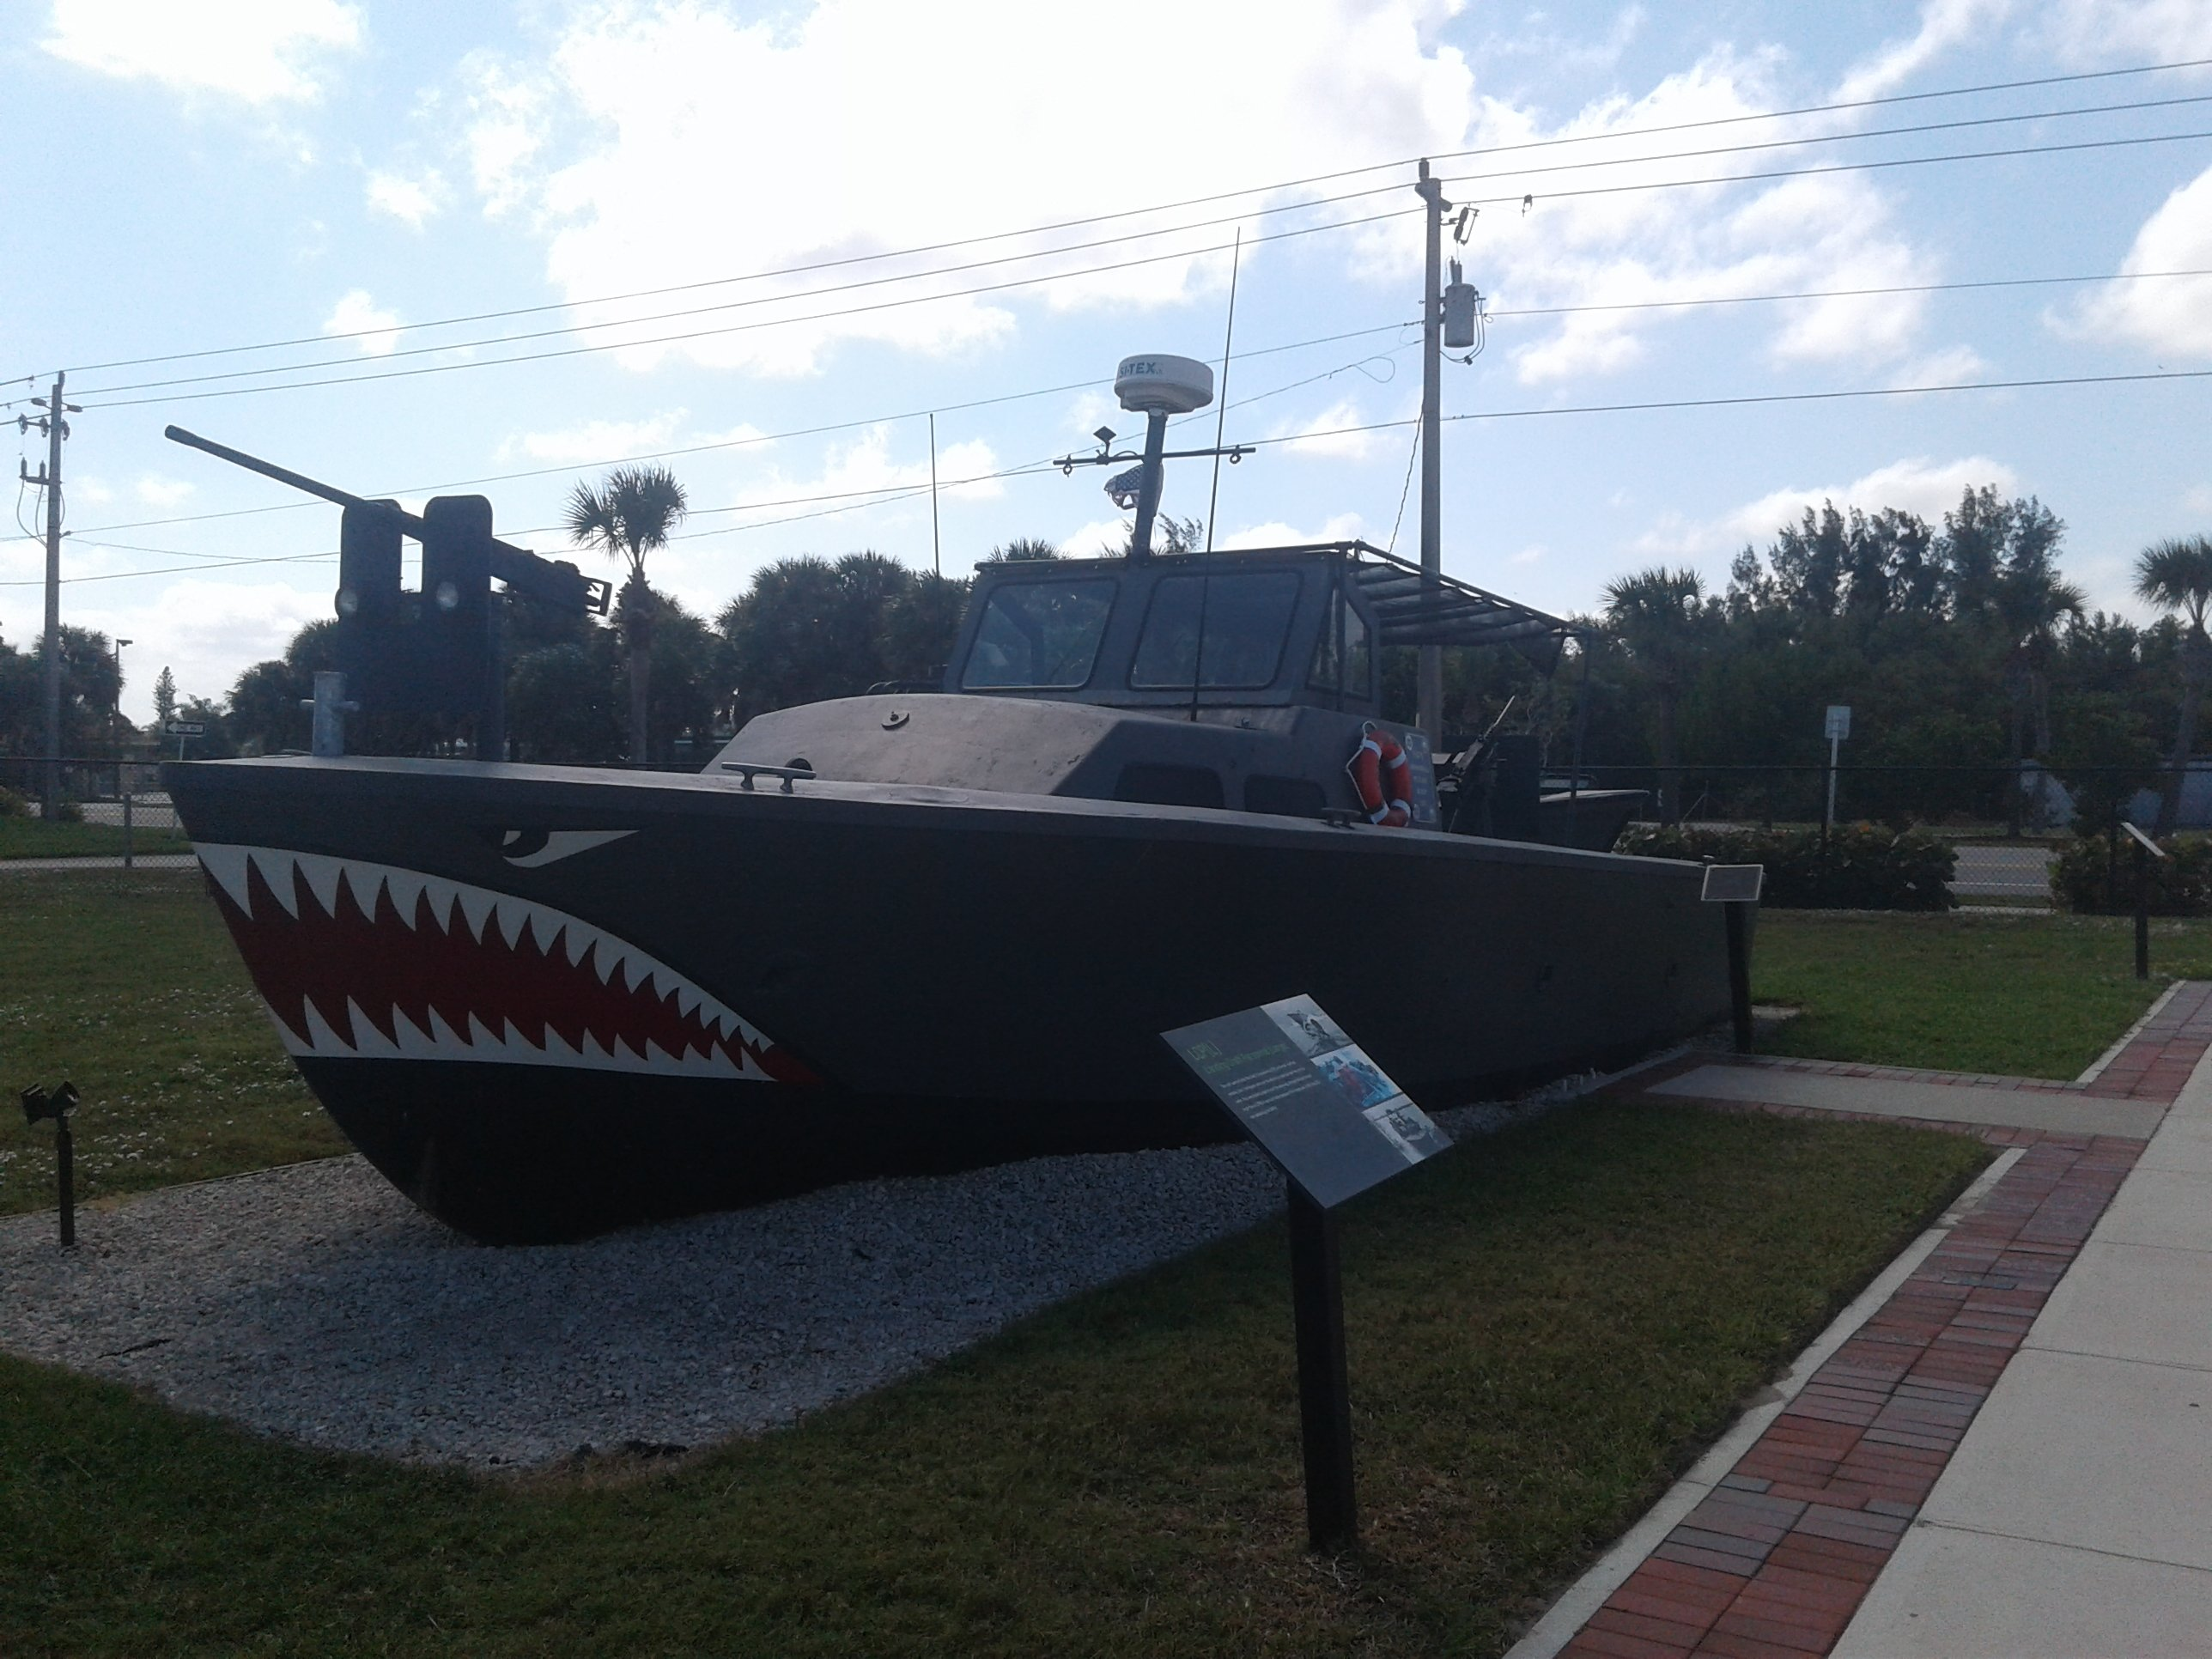 One of the boats on display that had been used by SEAL operatives.